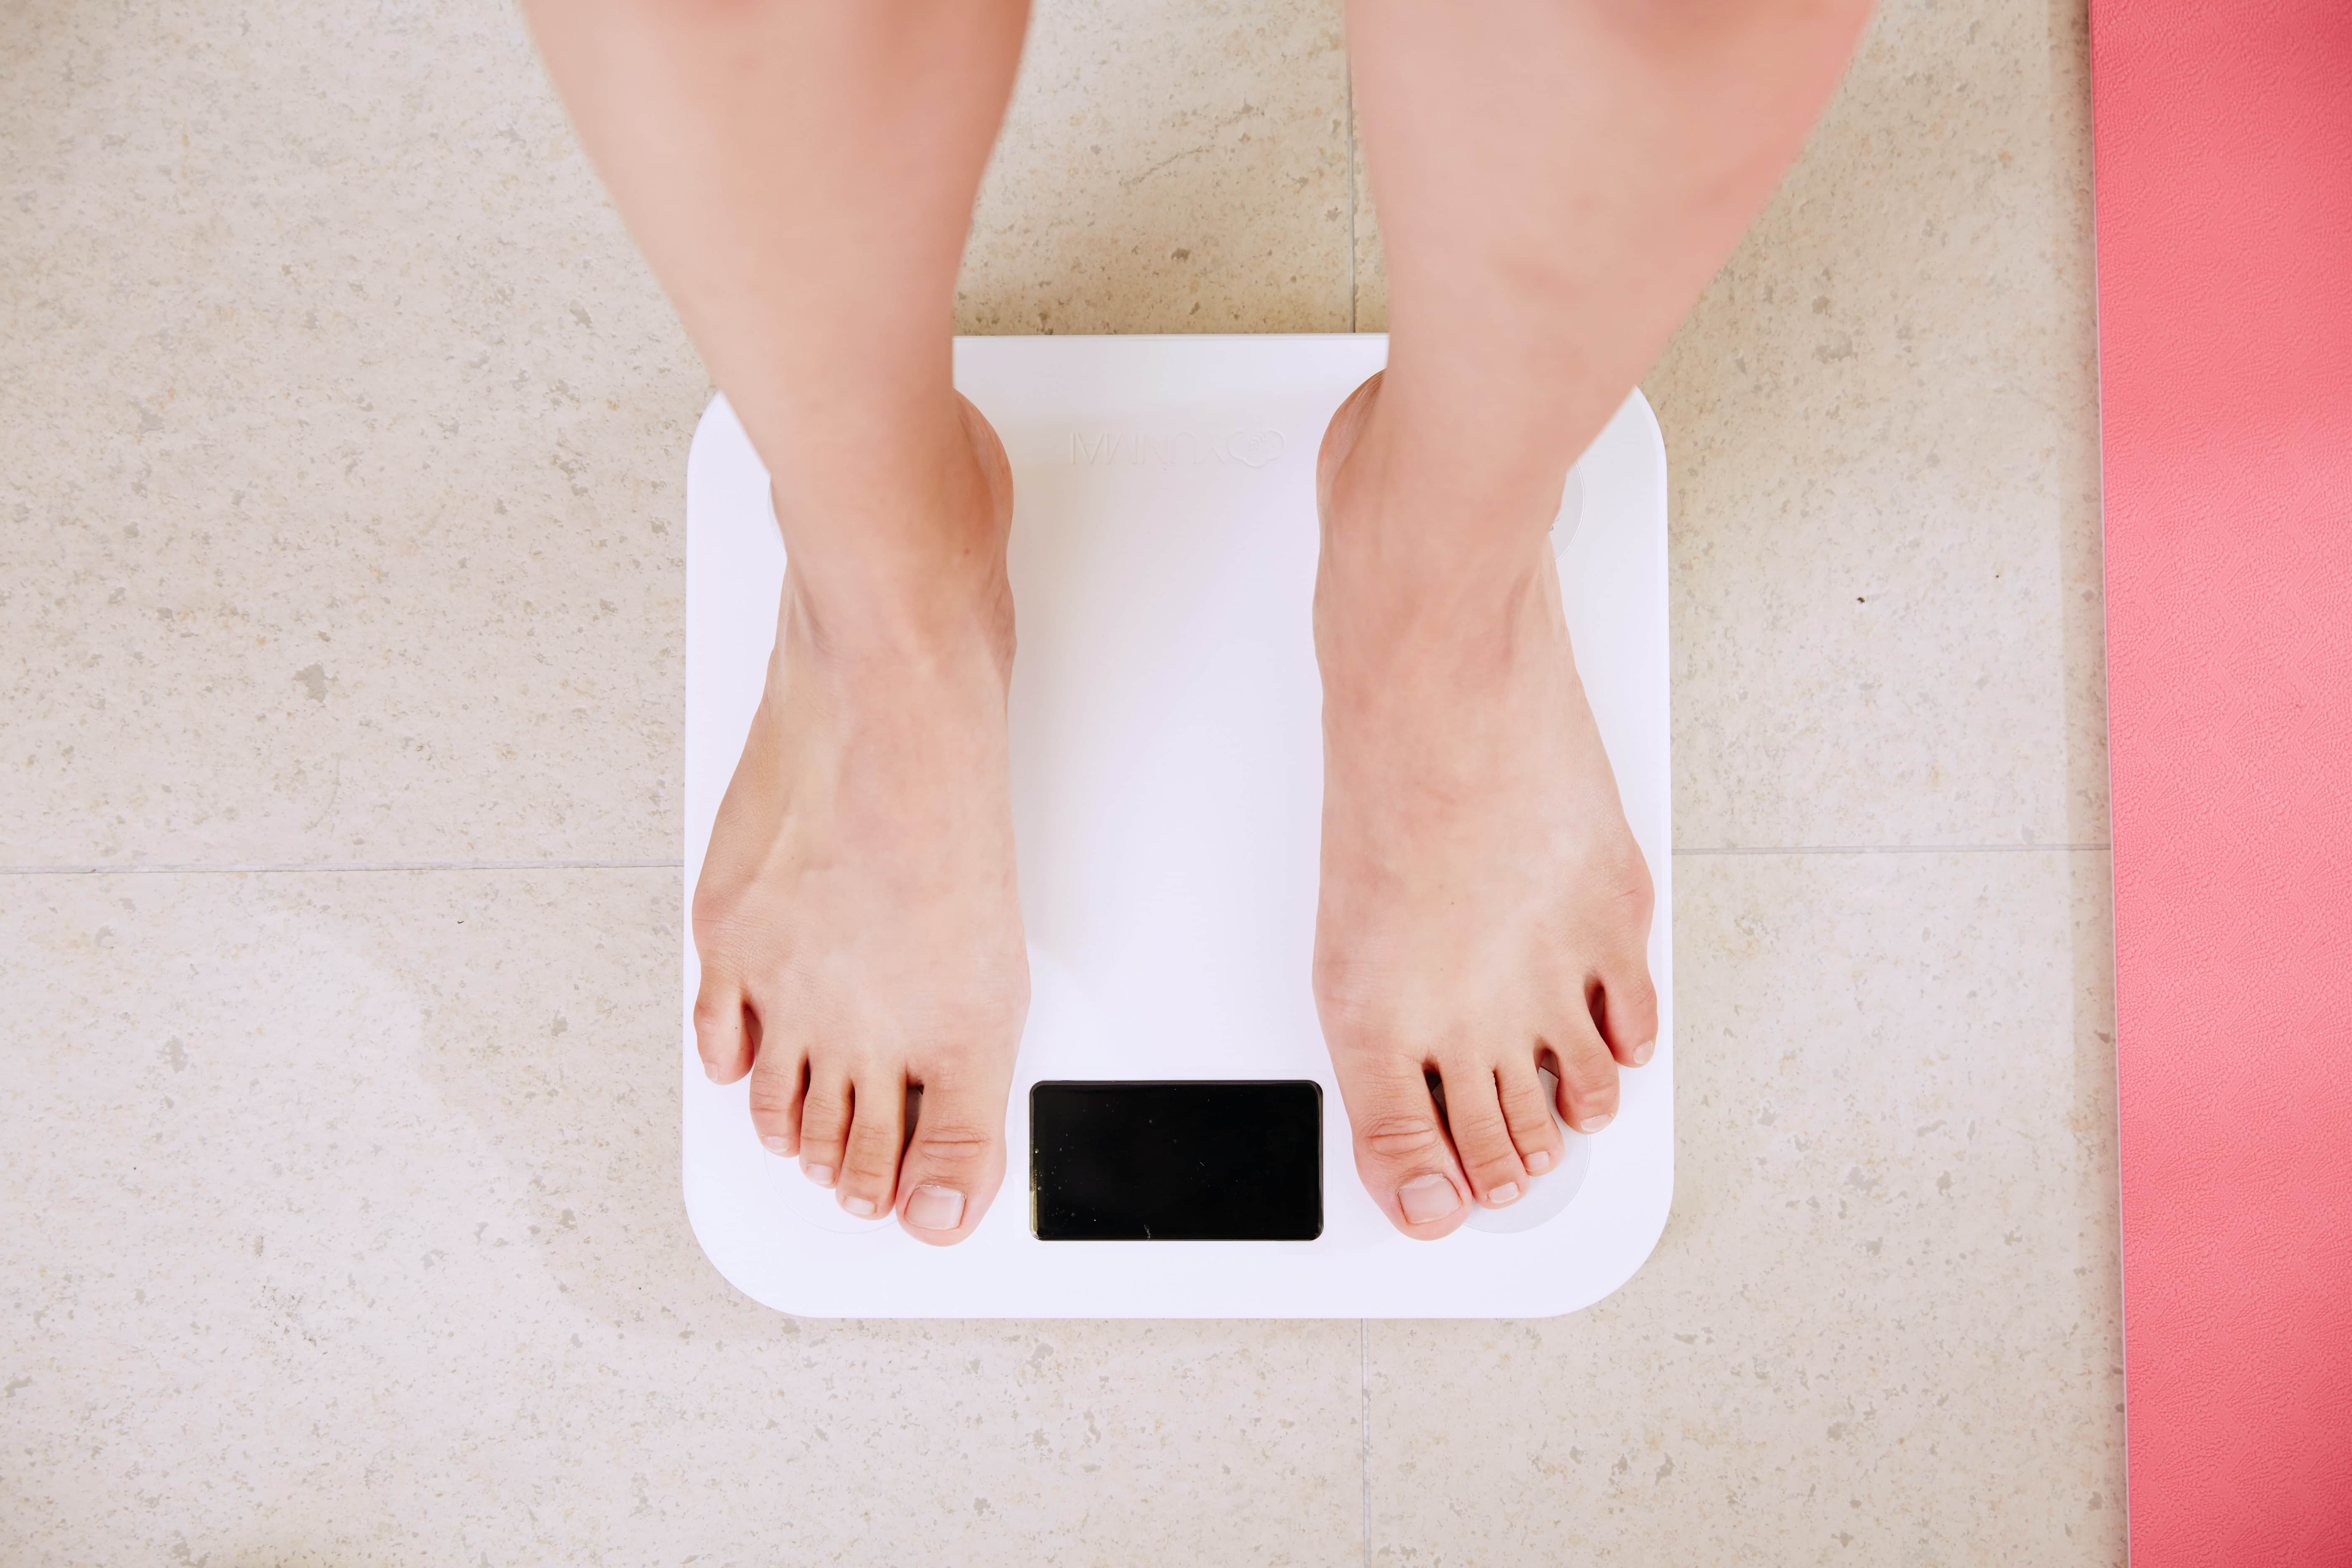 hypnosis for weight loss ontario